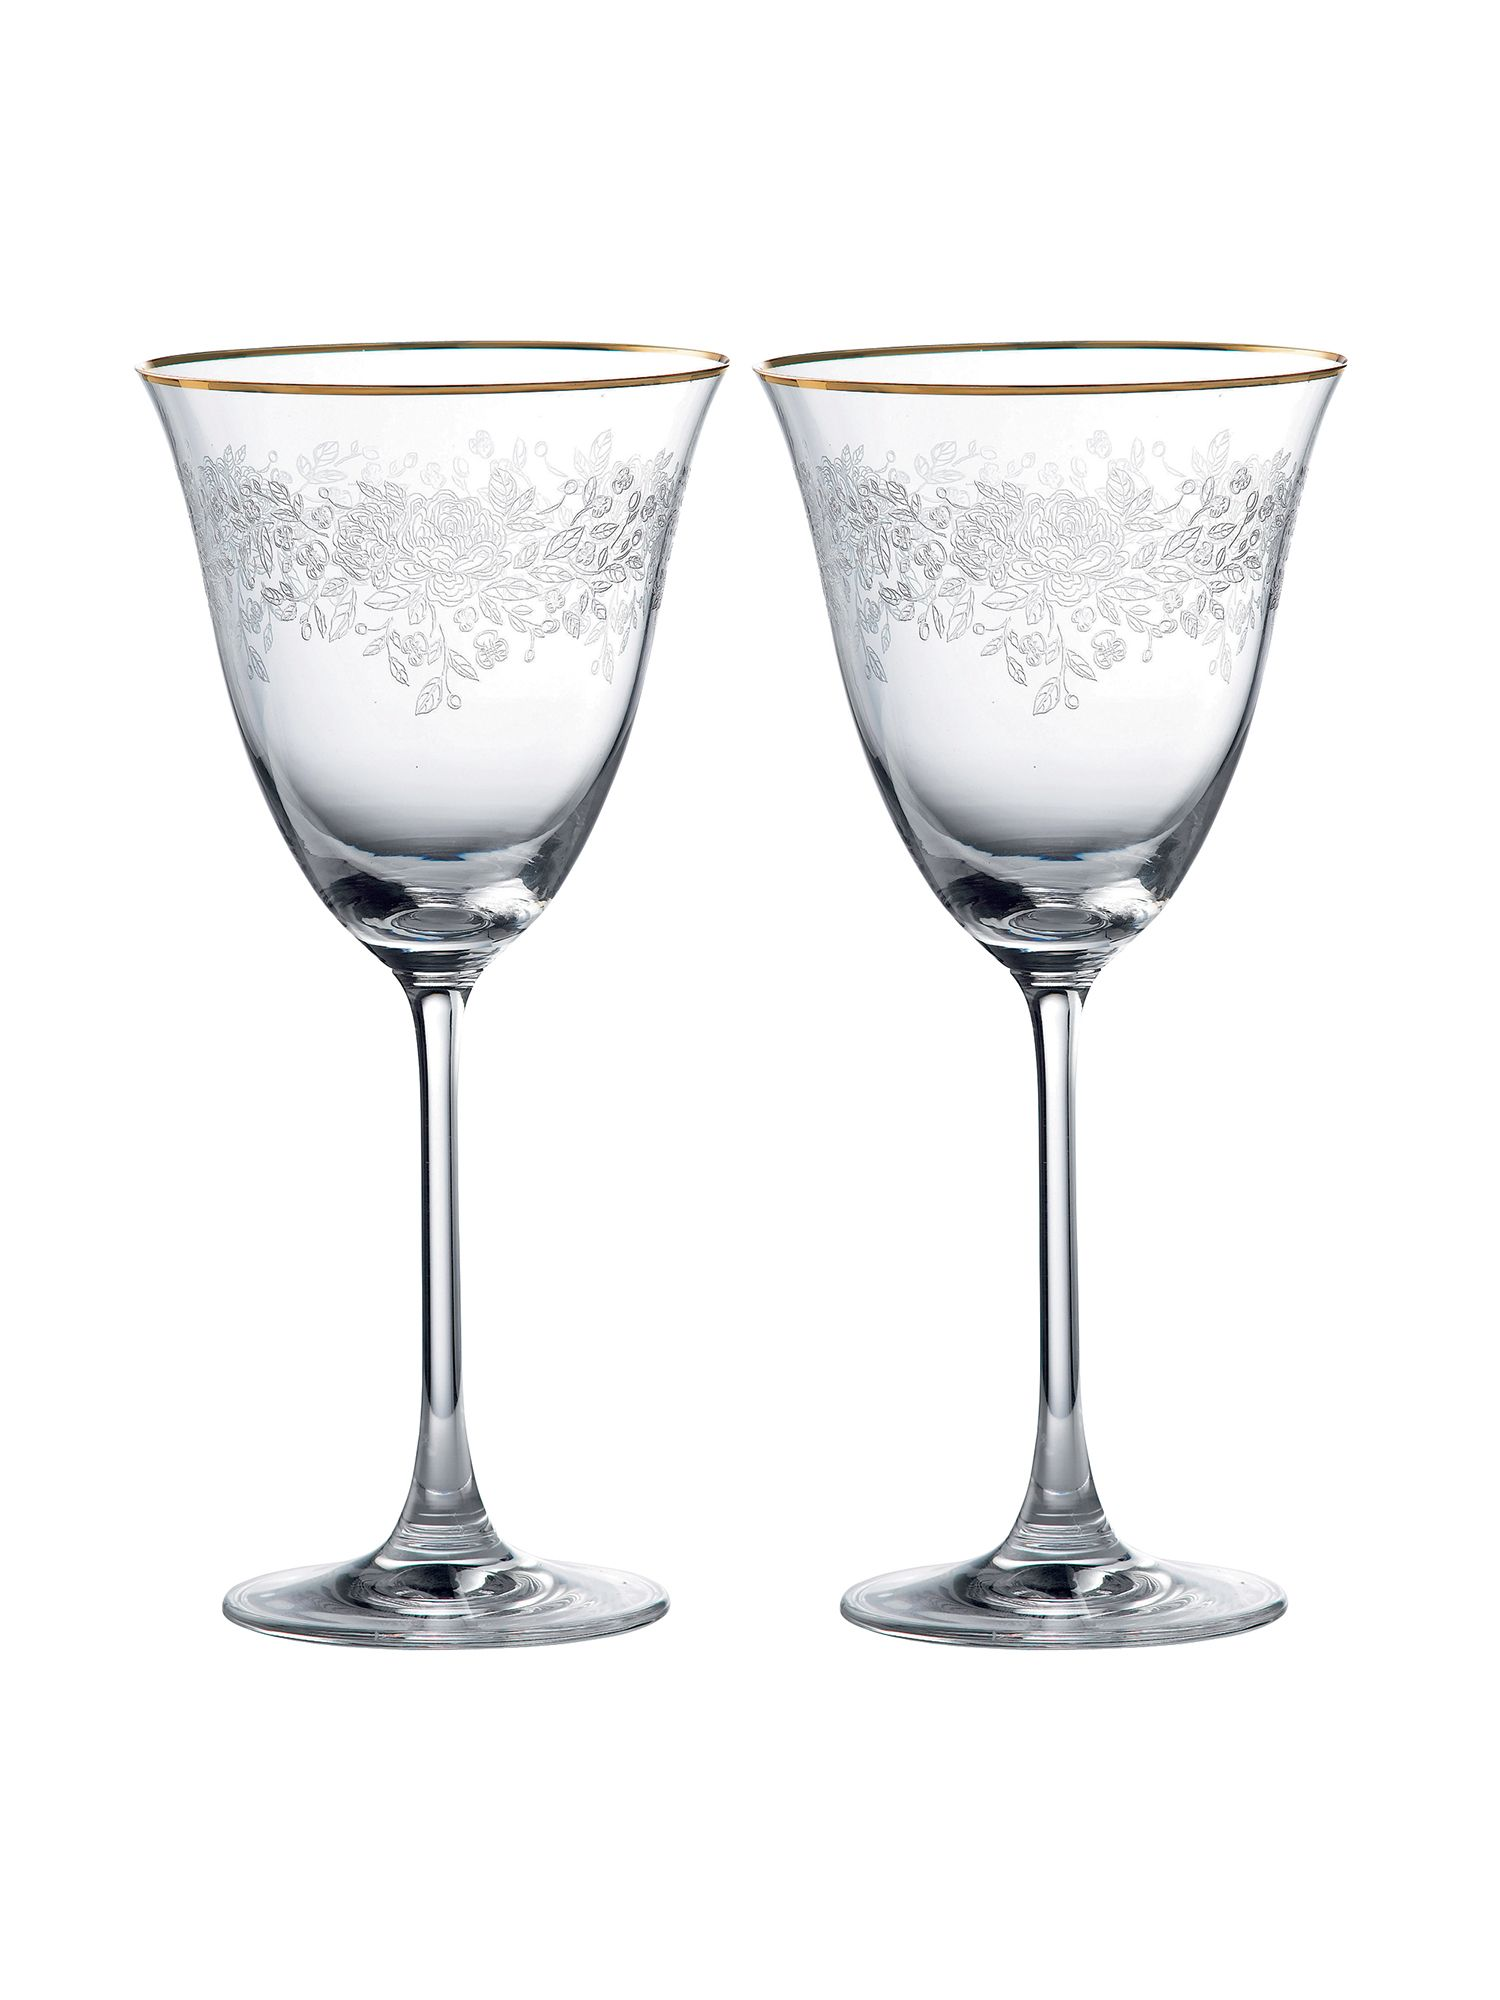 Set of 2 crystal Goblets